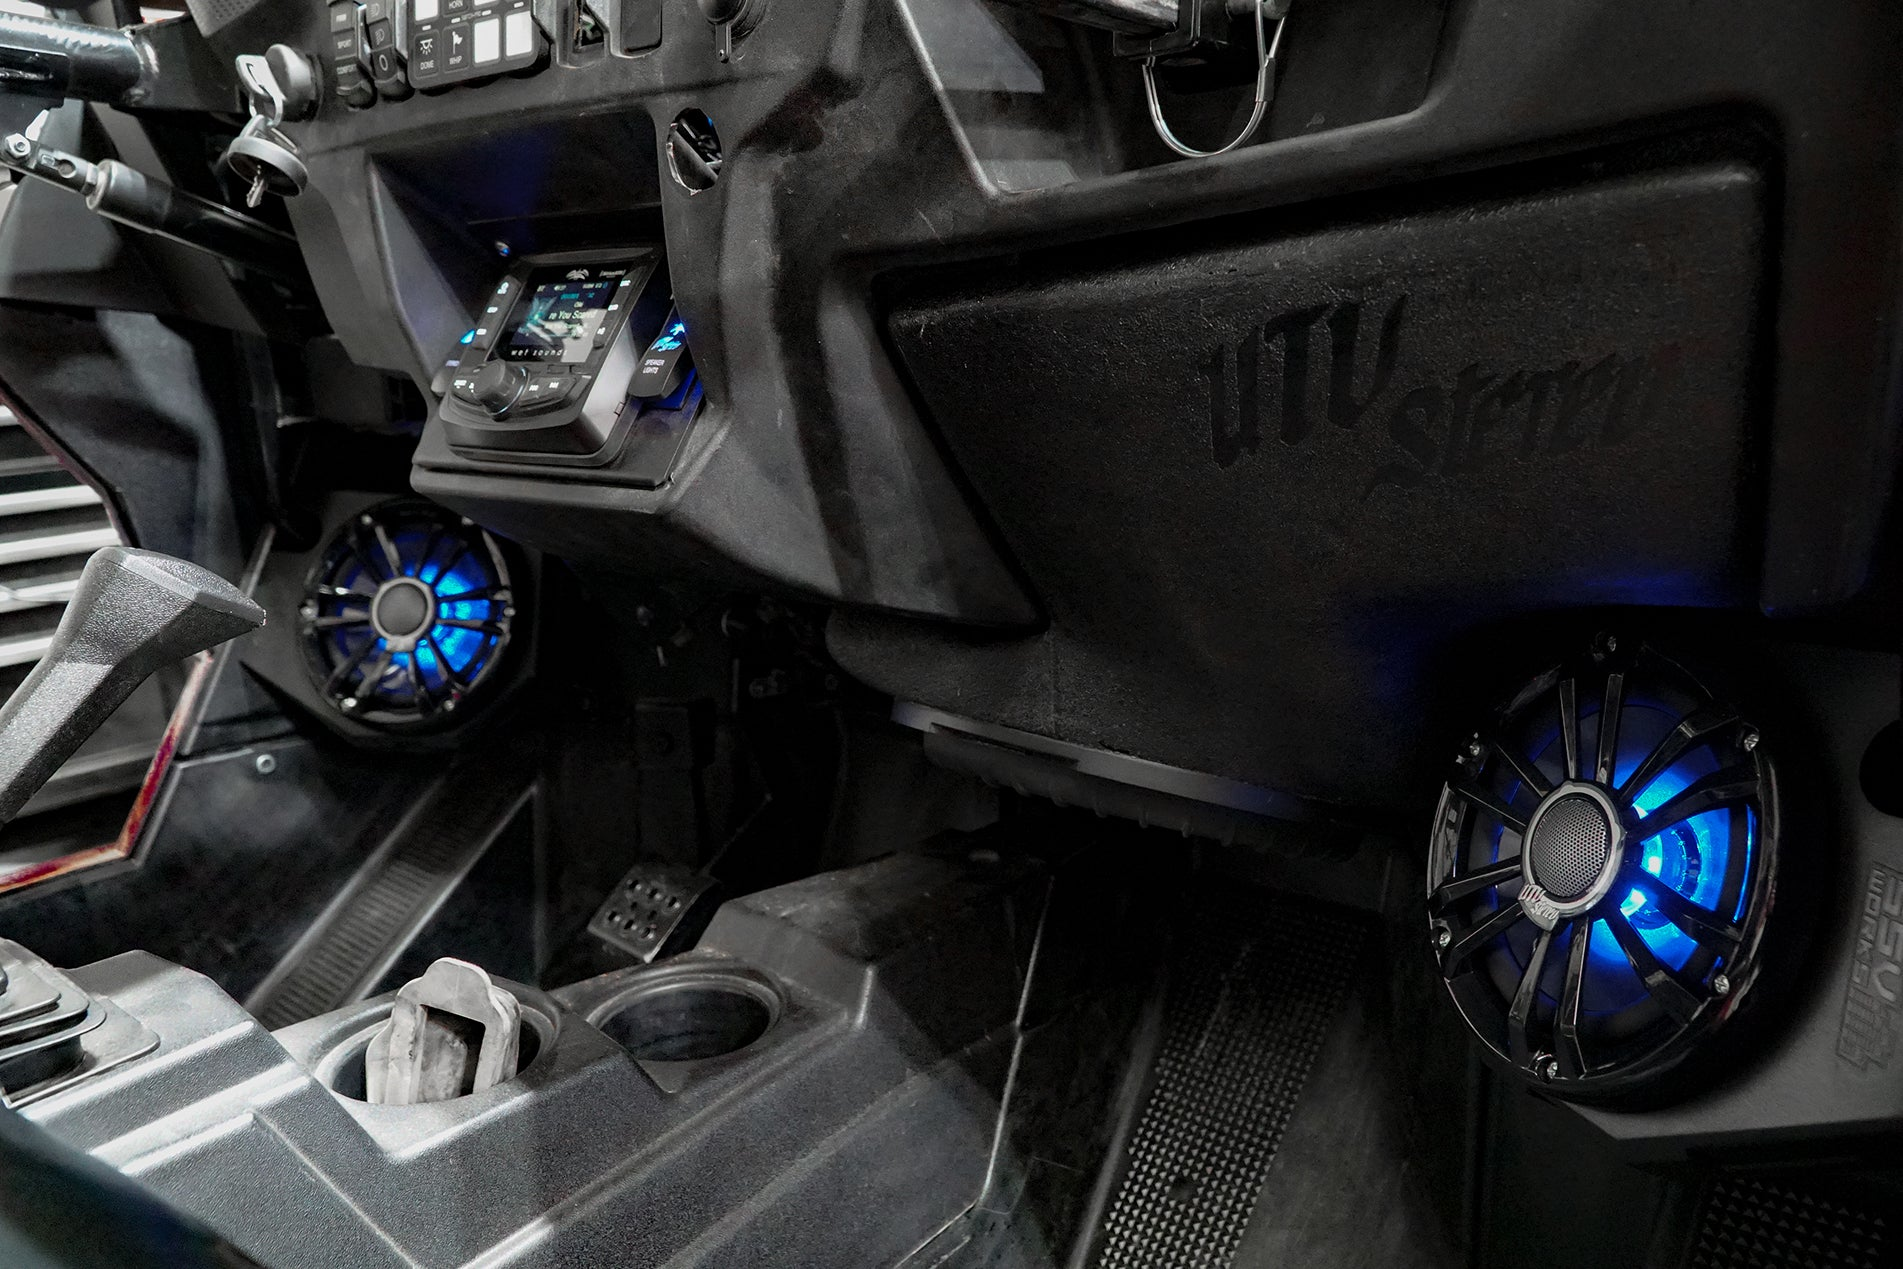 Polaris RZR Ride Command UTV Stereo Stage 7 Stereo System